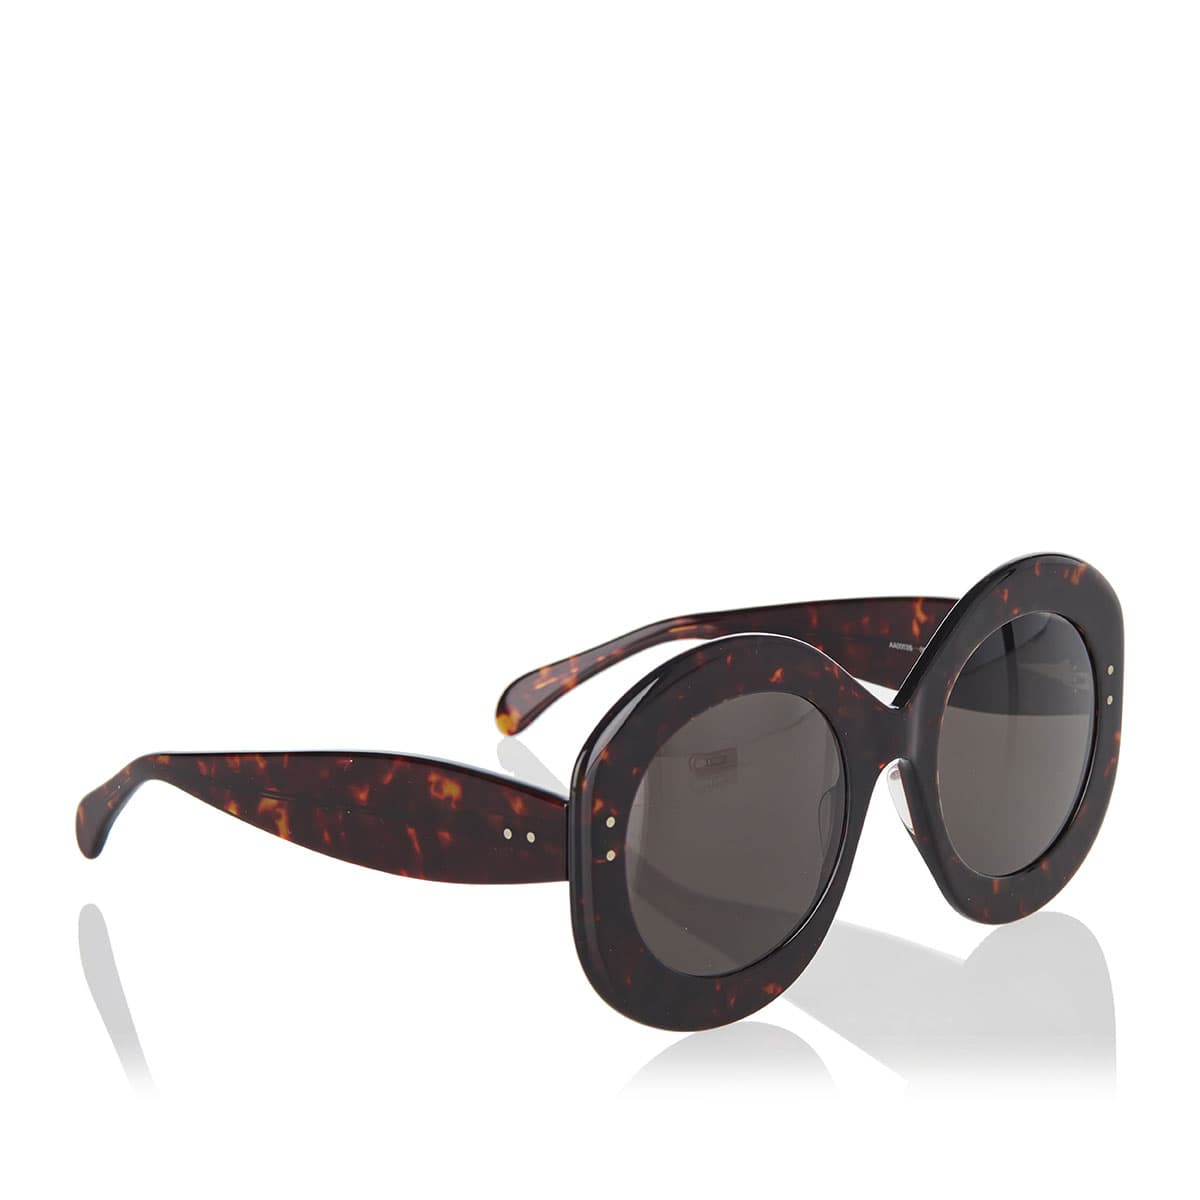 Oversized square acetate sunglasses